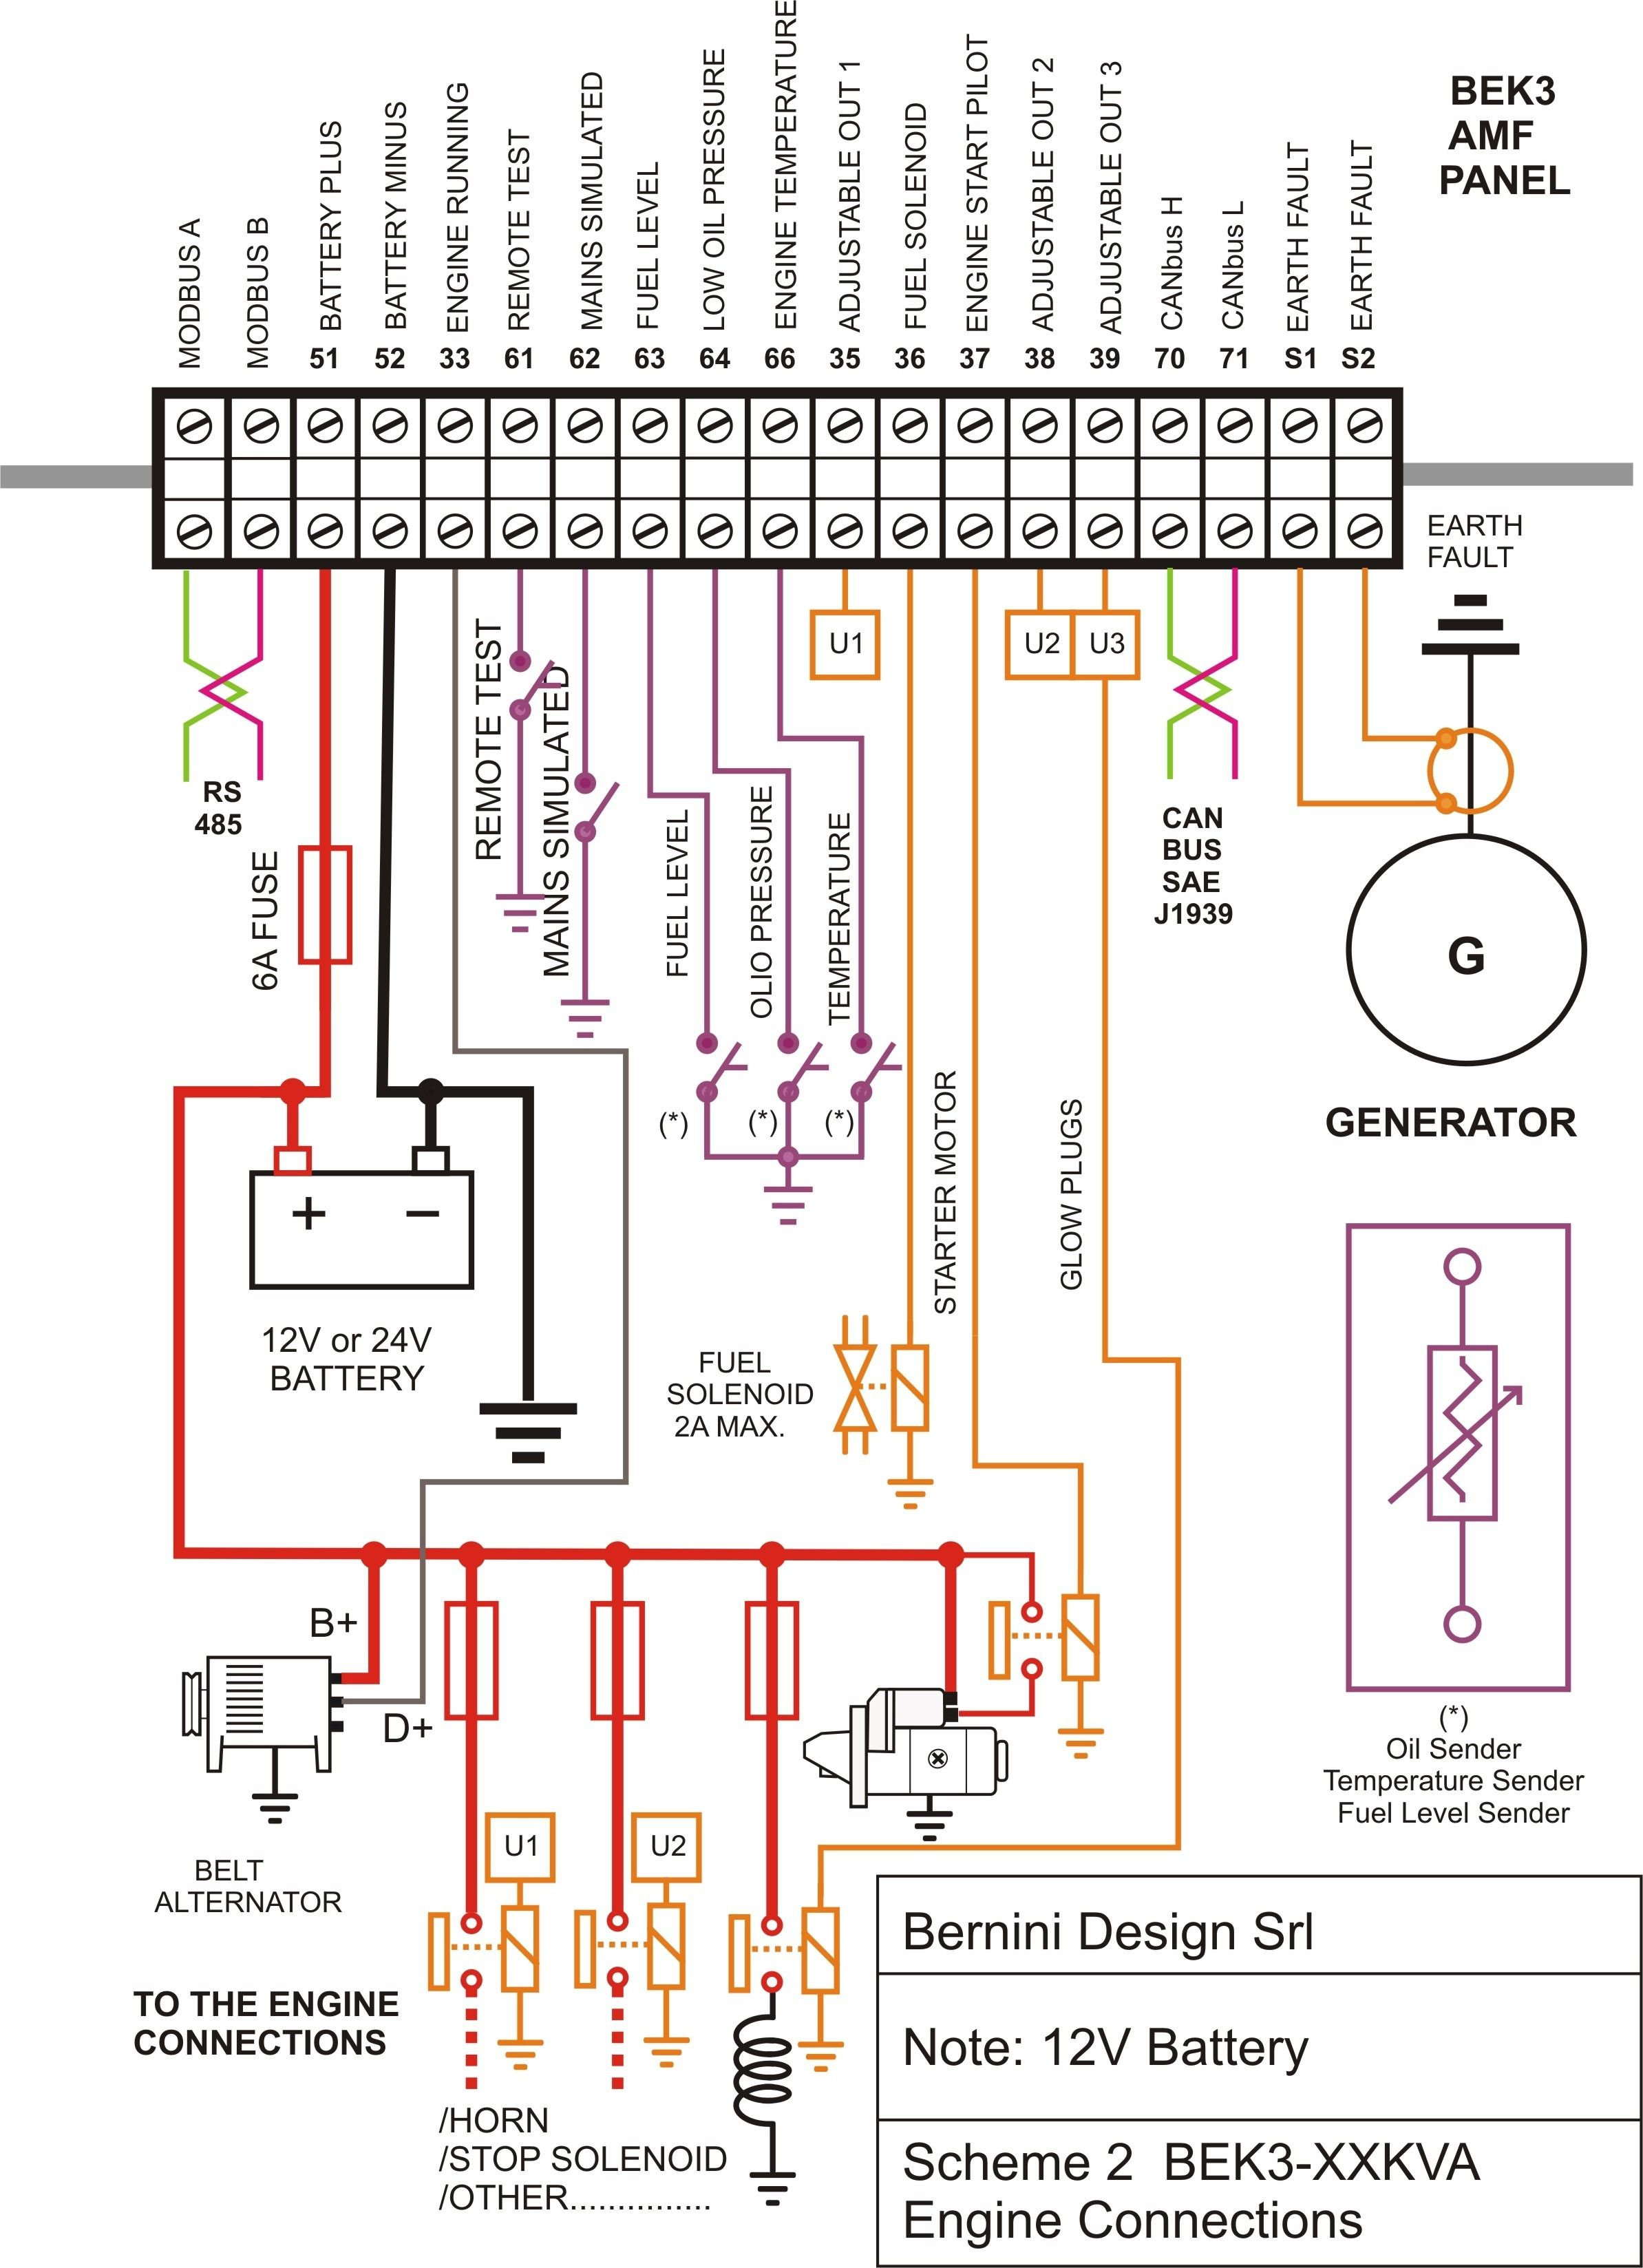 Panel Wiring Diagram Pdf